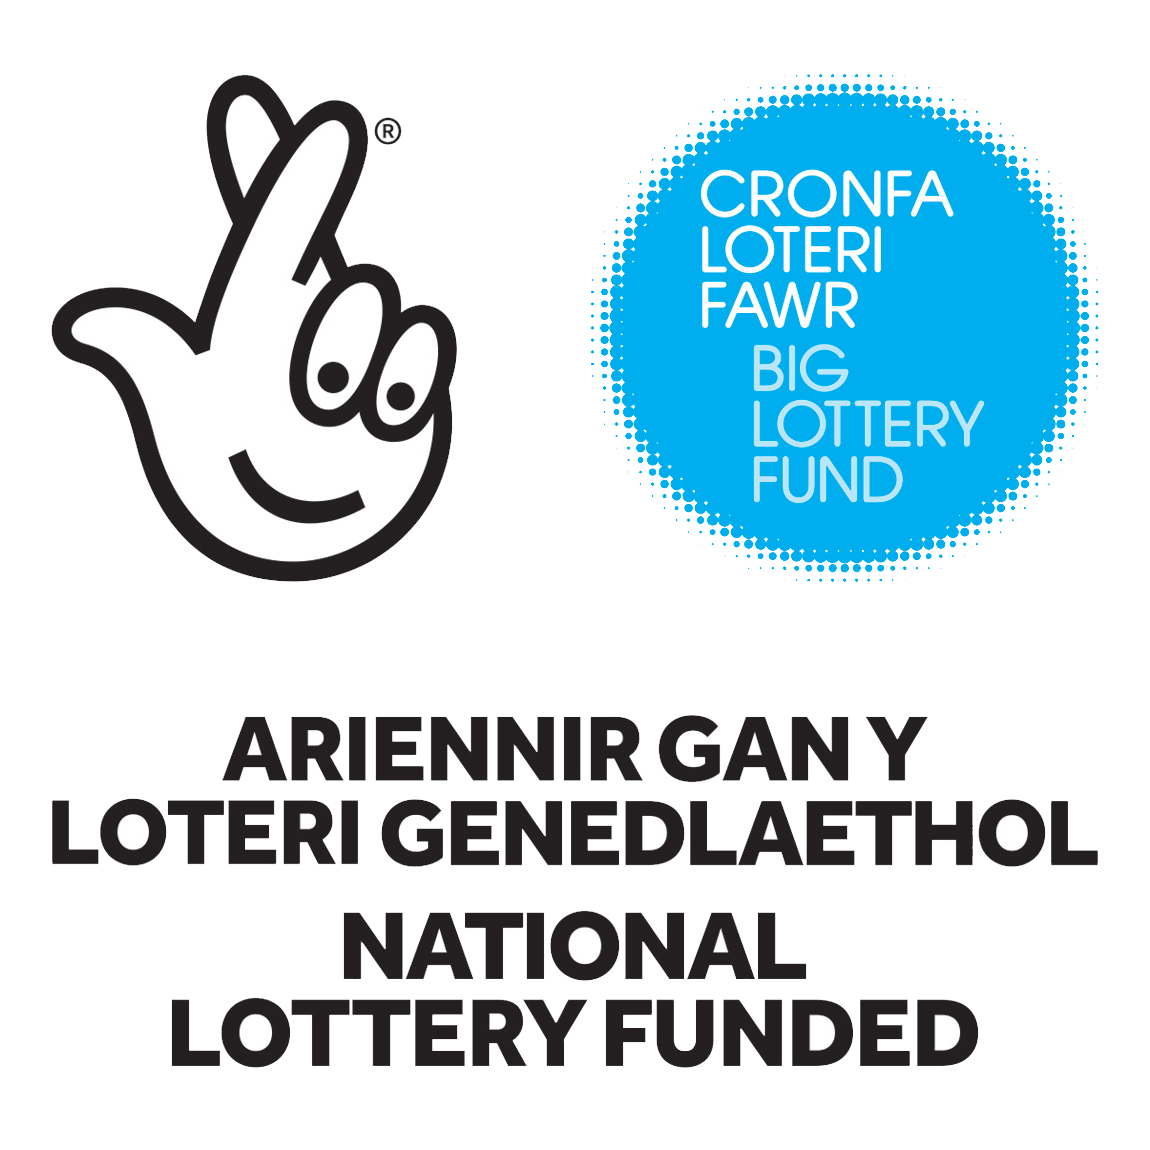 Big Lottery Fund, Lottery Funded - Link Opens in a new window